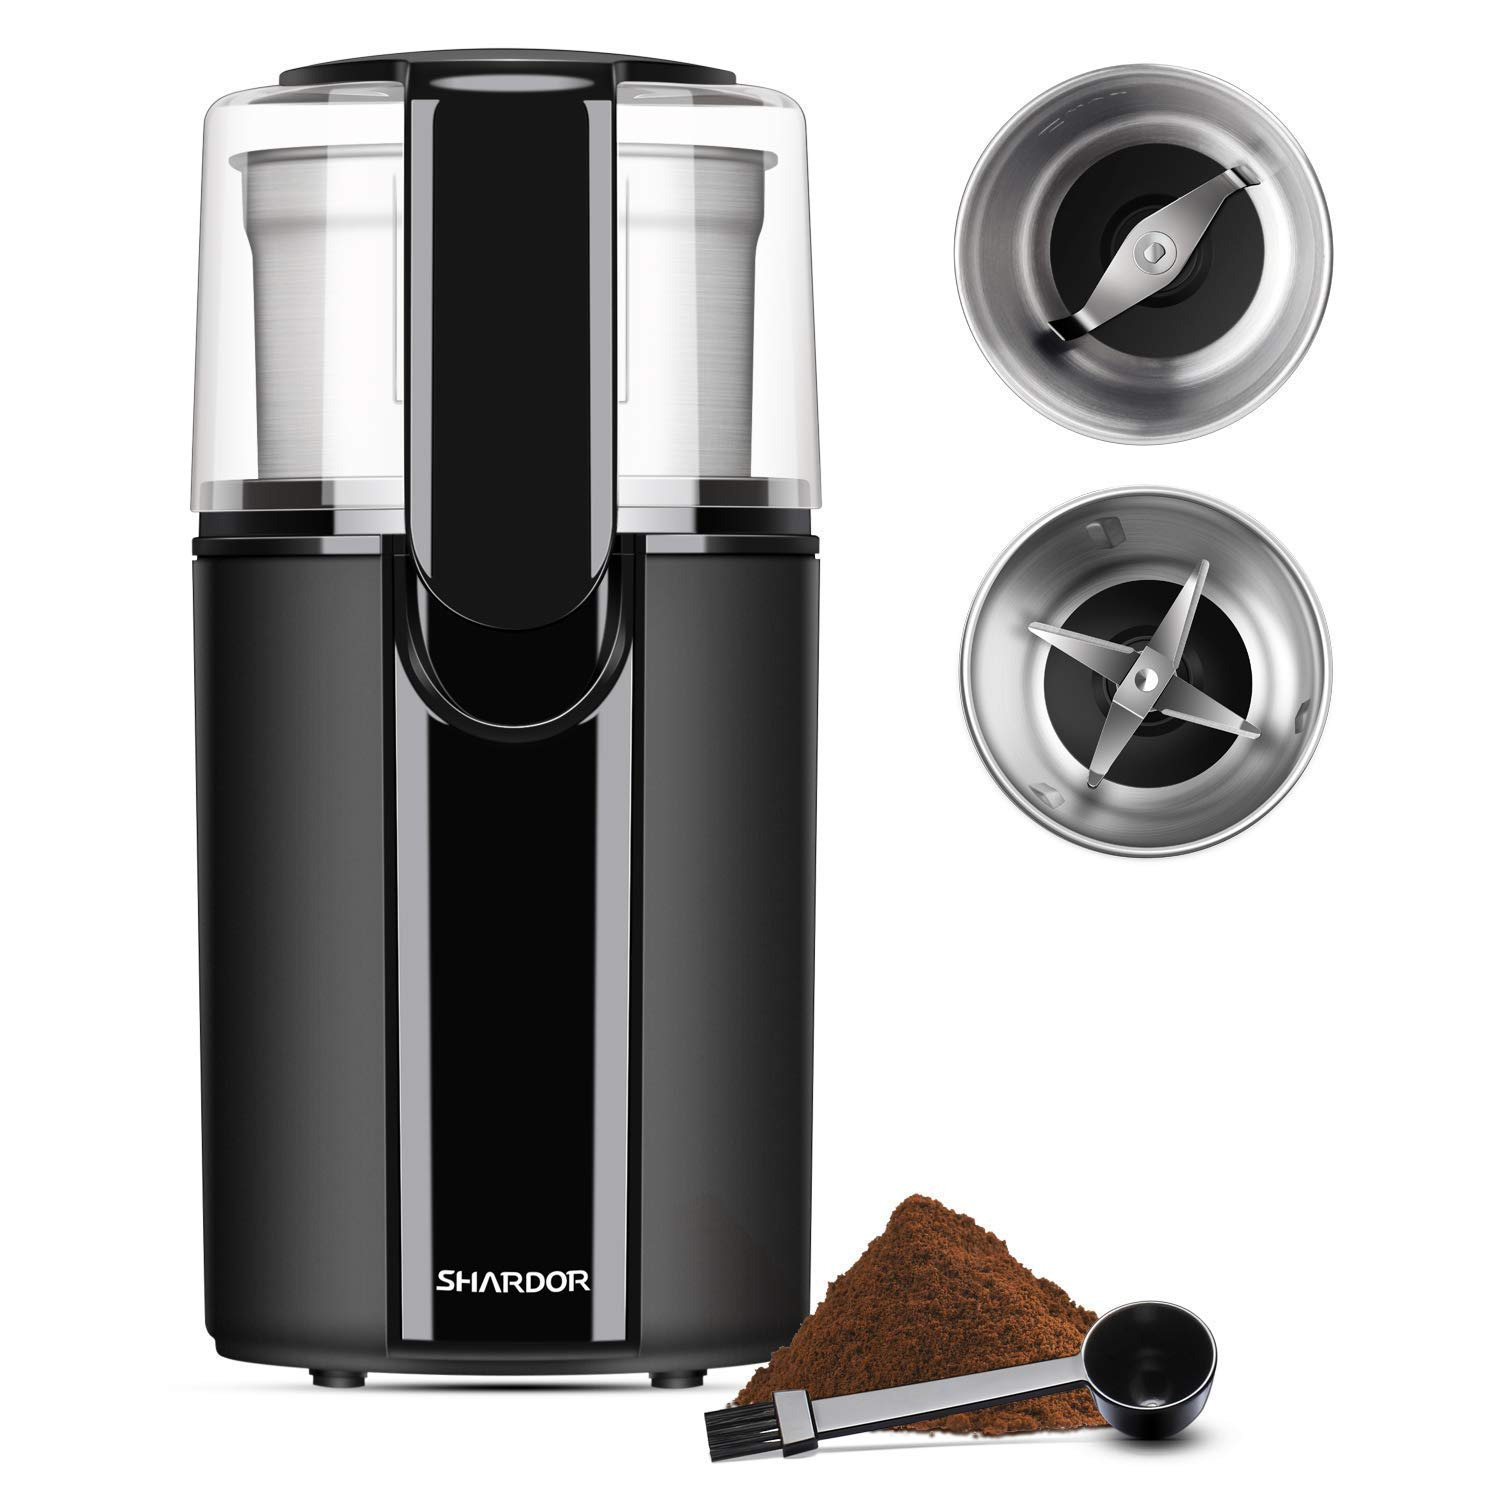 SHARDOR Coffee & Spice Grinder Electric, 2 Removable Stainless Steel Bowls for dry or wet grinding, Black. …